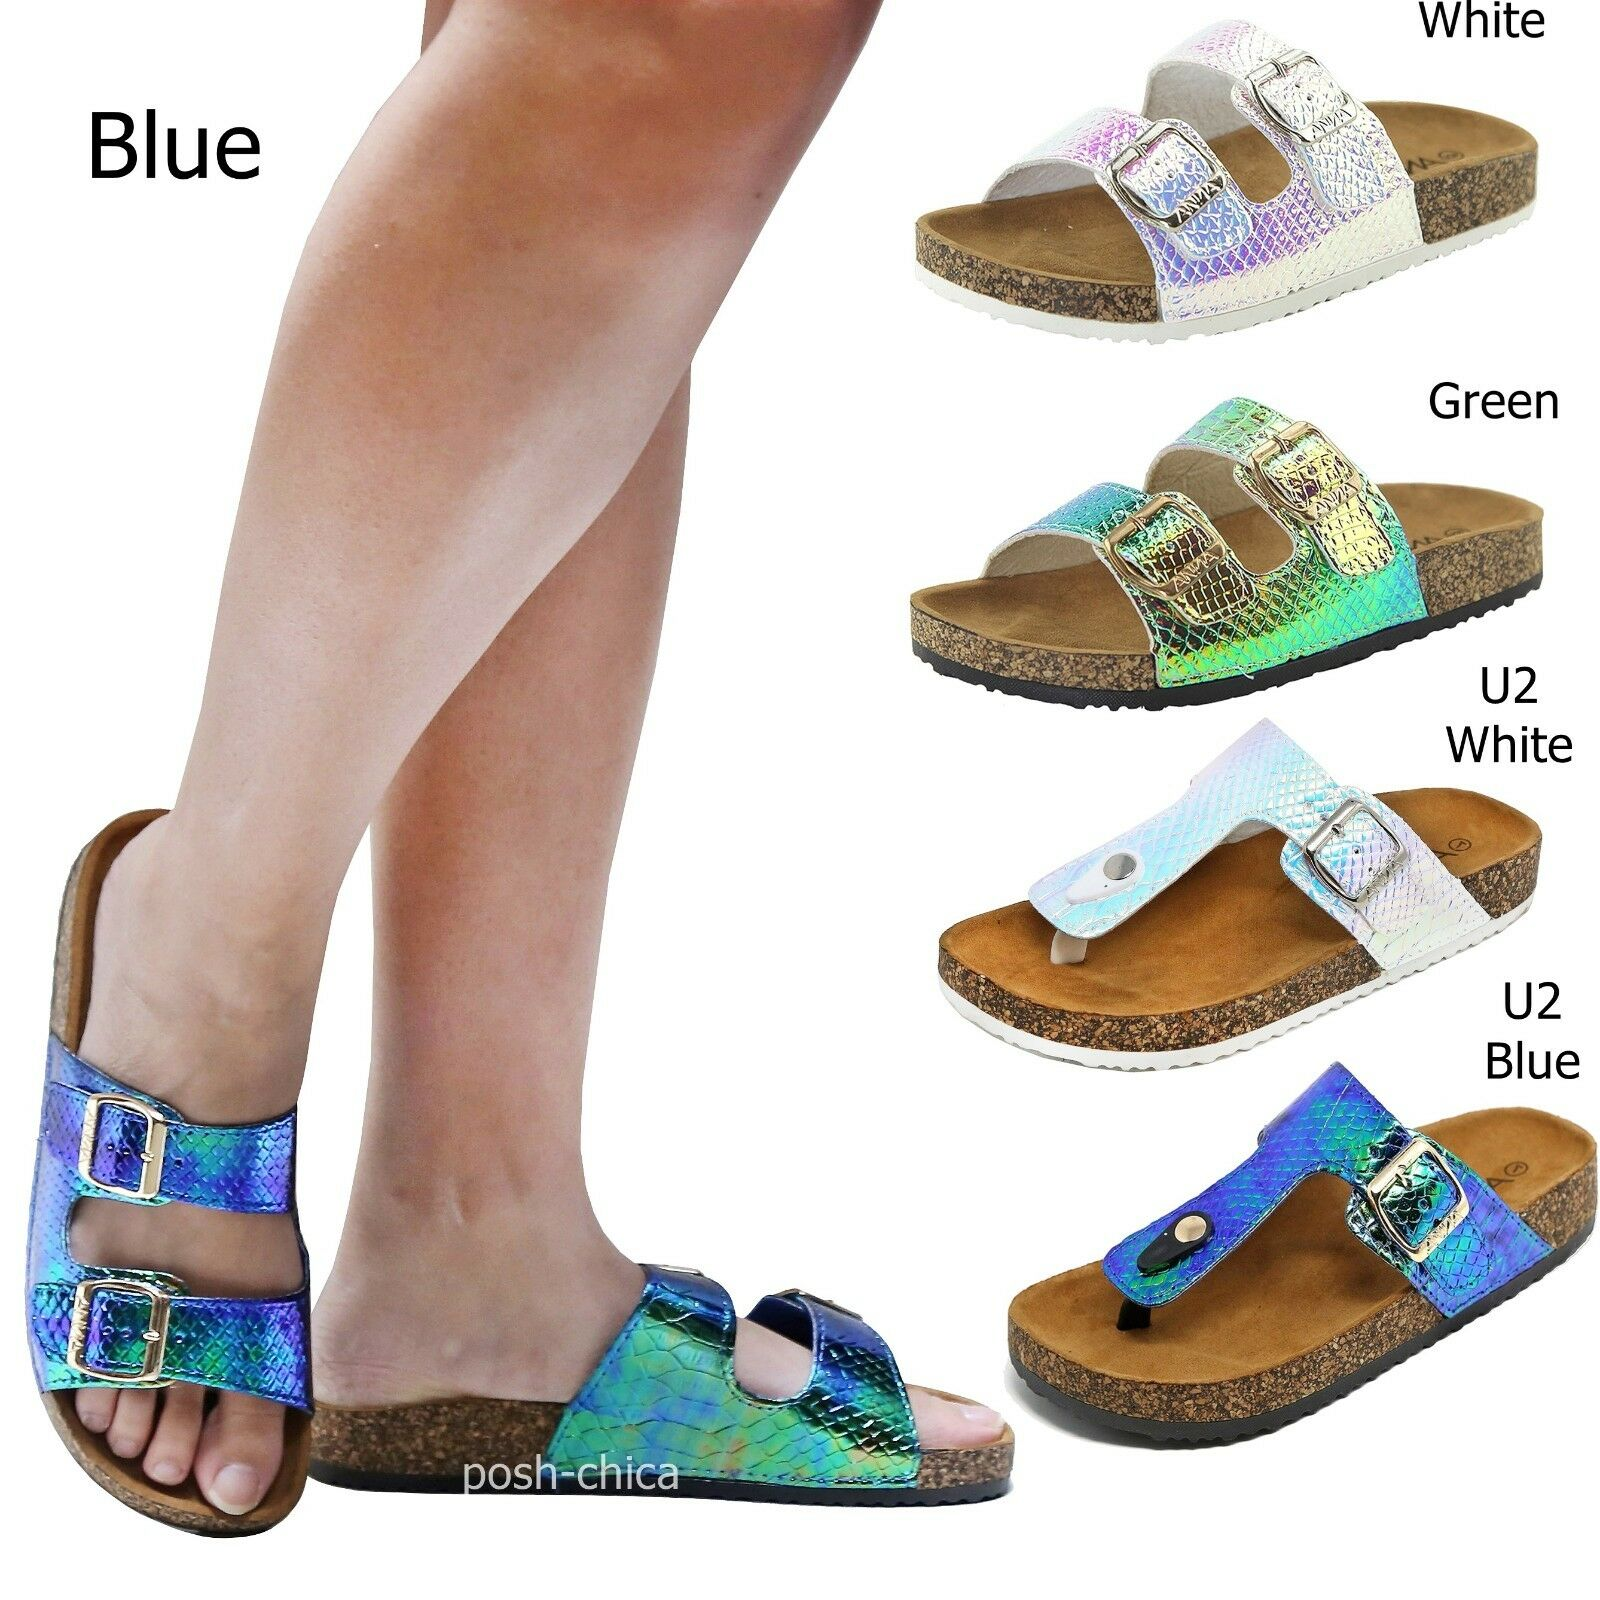 New Buckle Women Mermaid Unicorn Holographic Buckle New Sandals Slides Open Toe Slippers 924e10